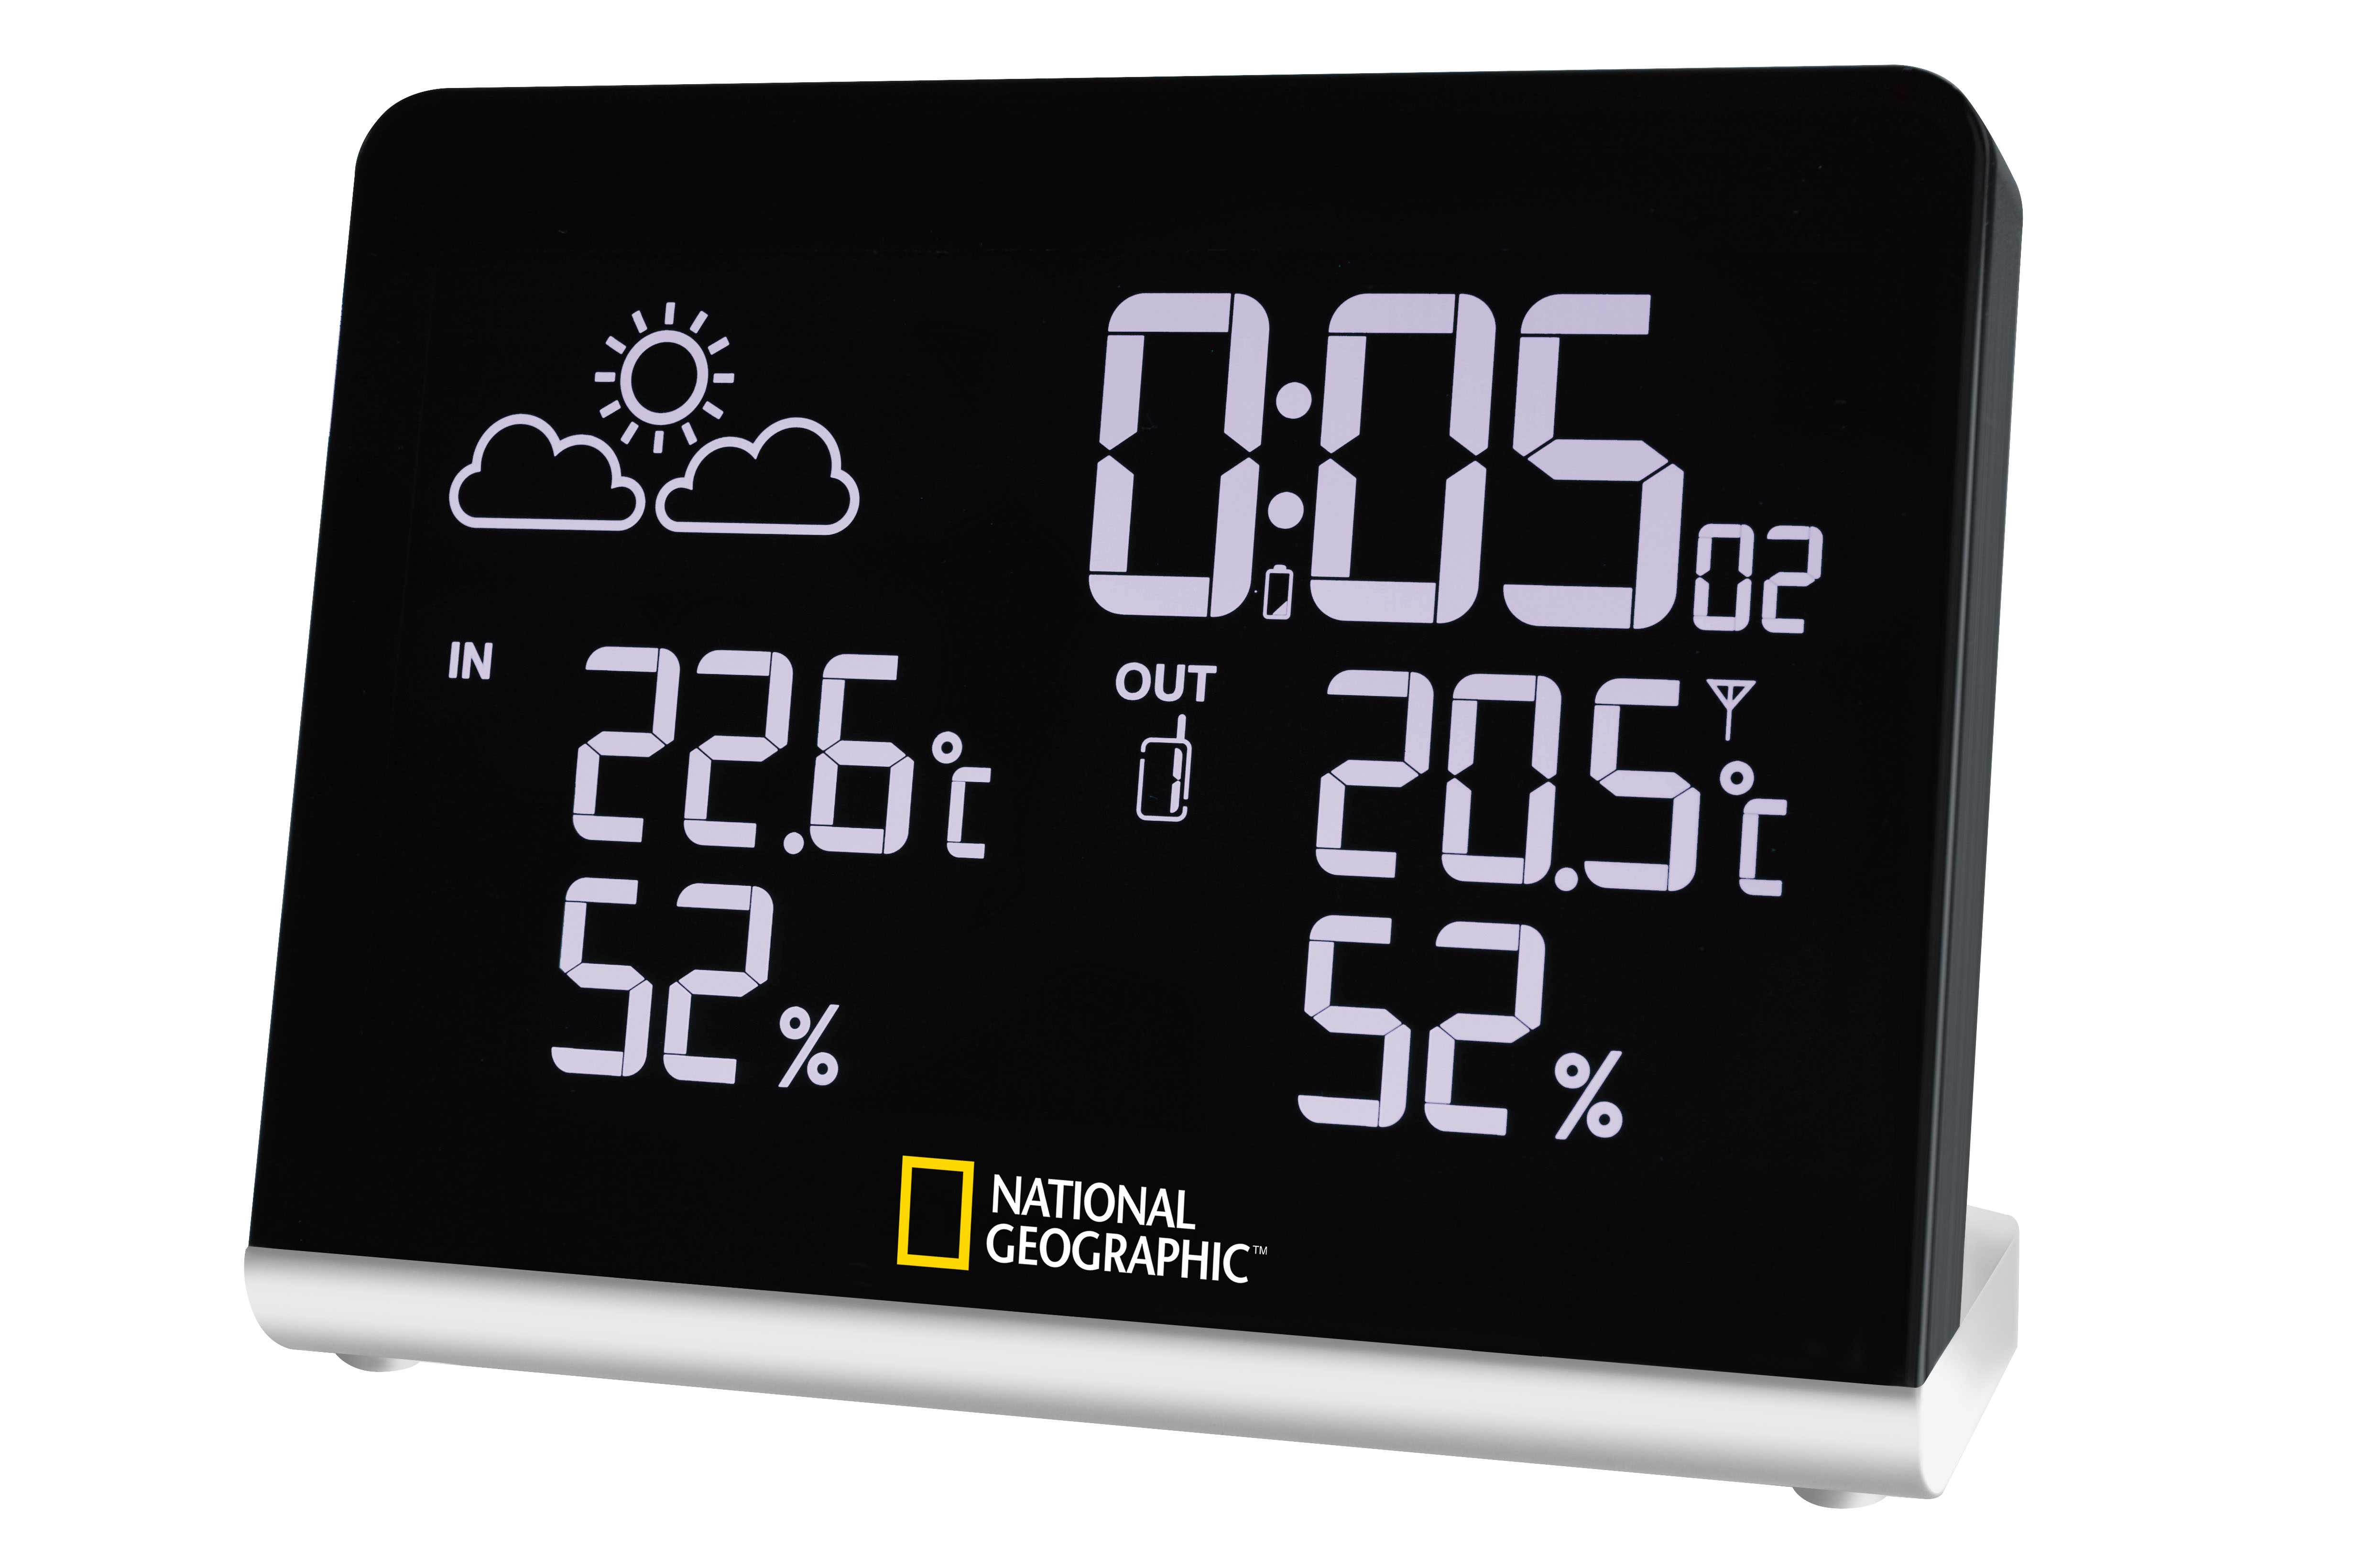 National geographic home weather station manual